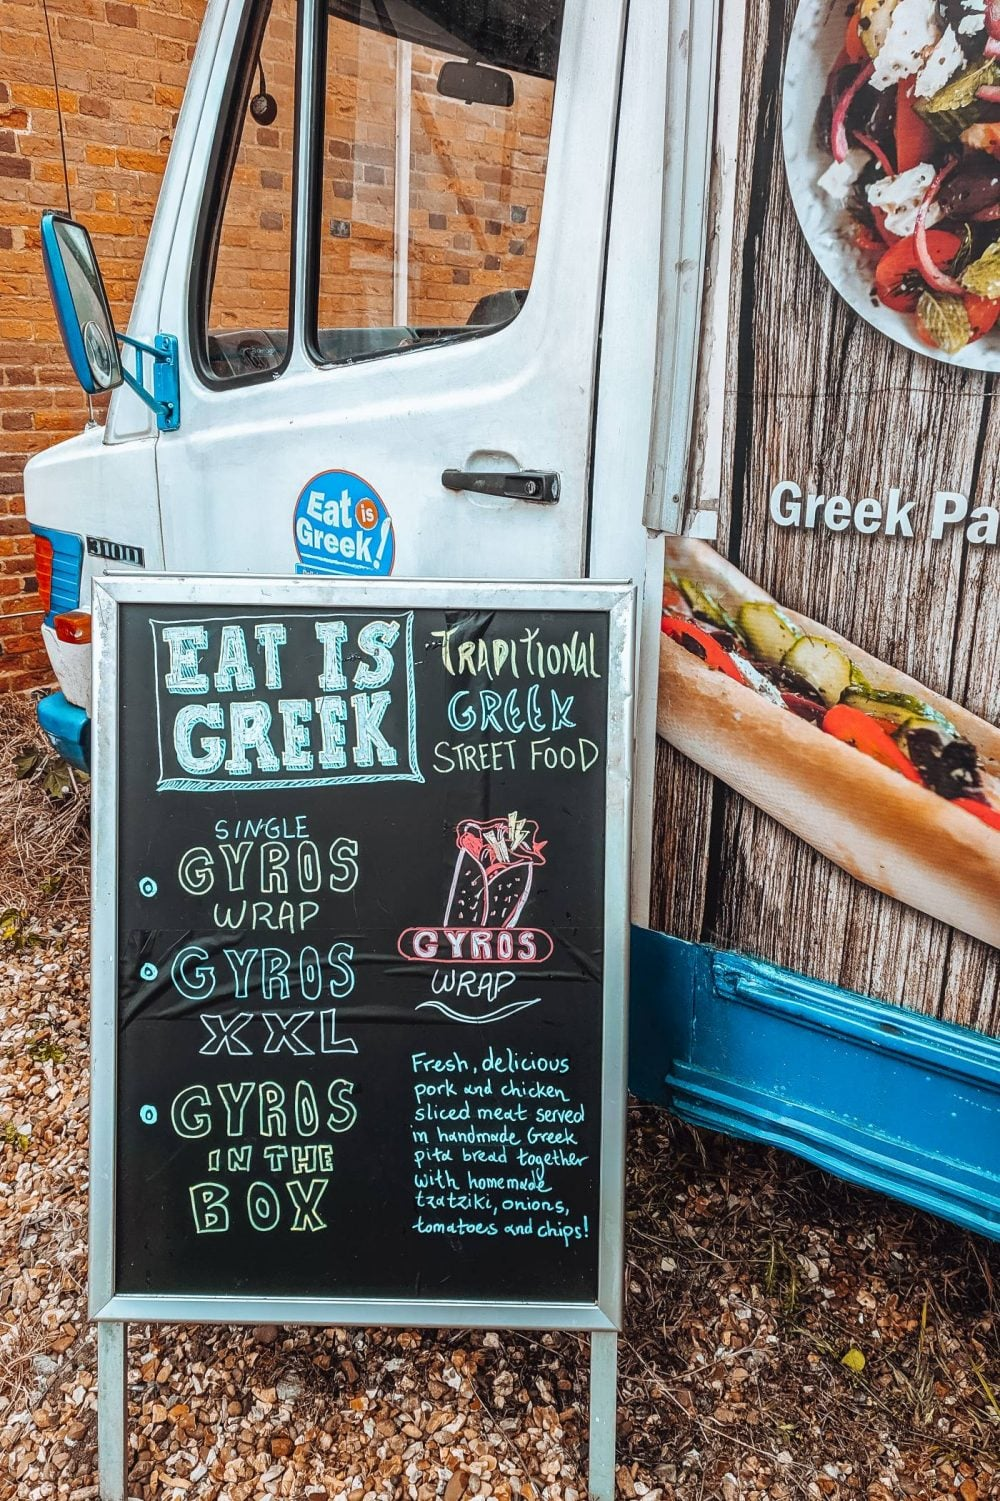 Eat is Greek menu